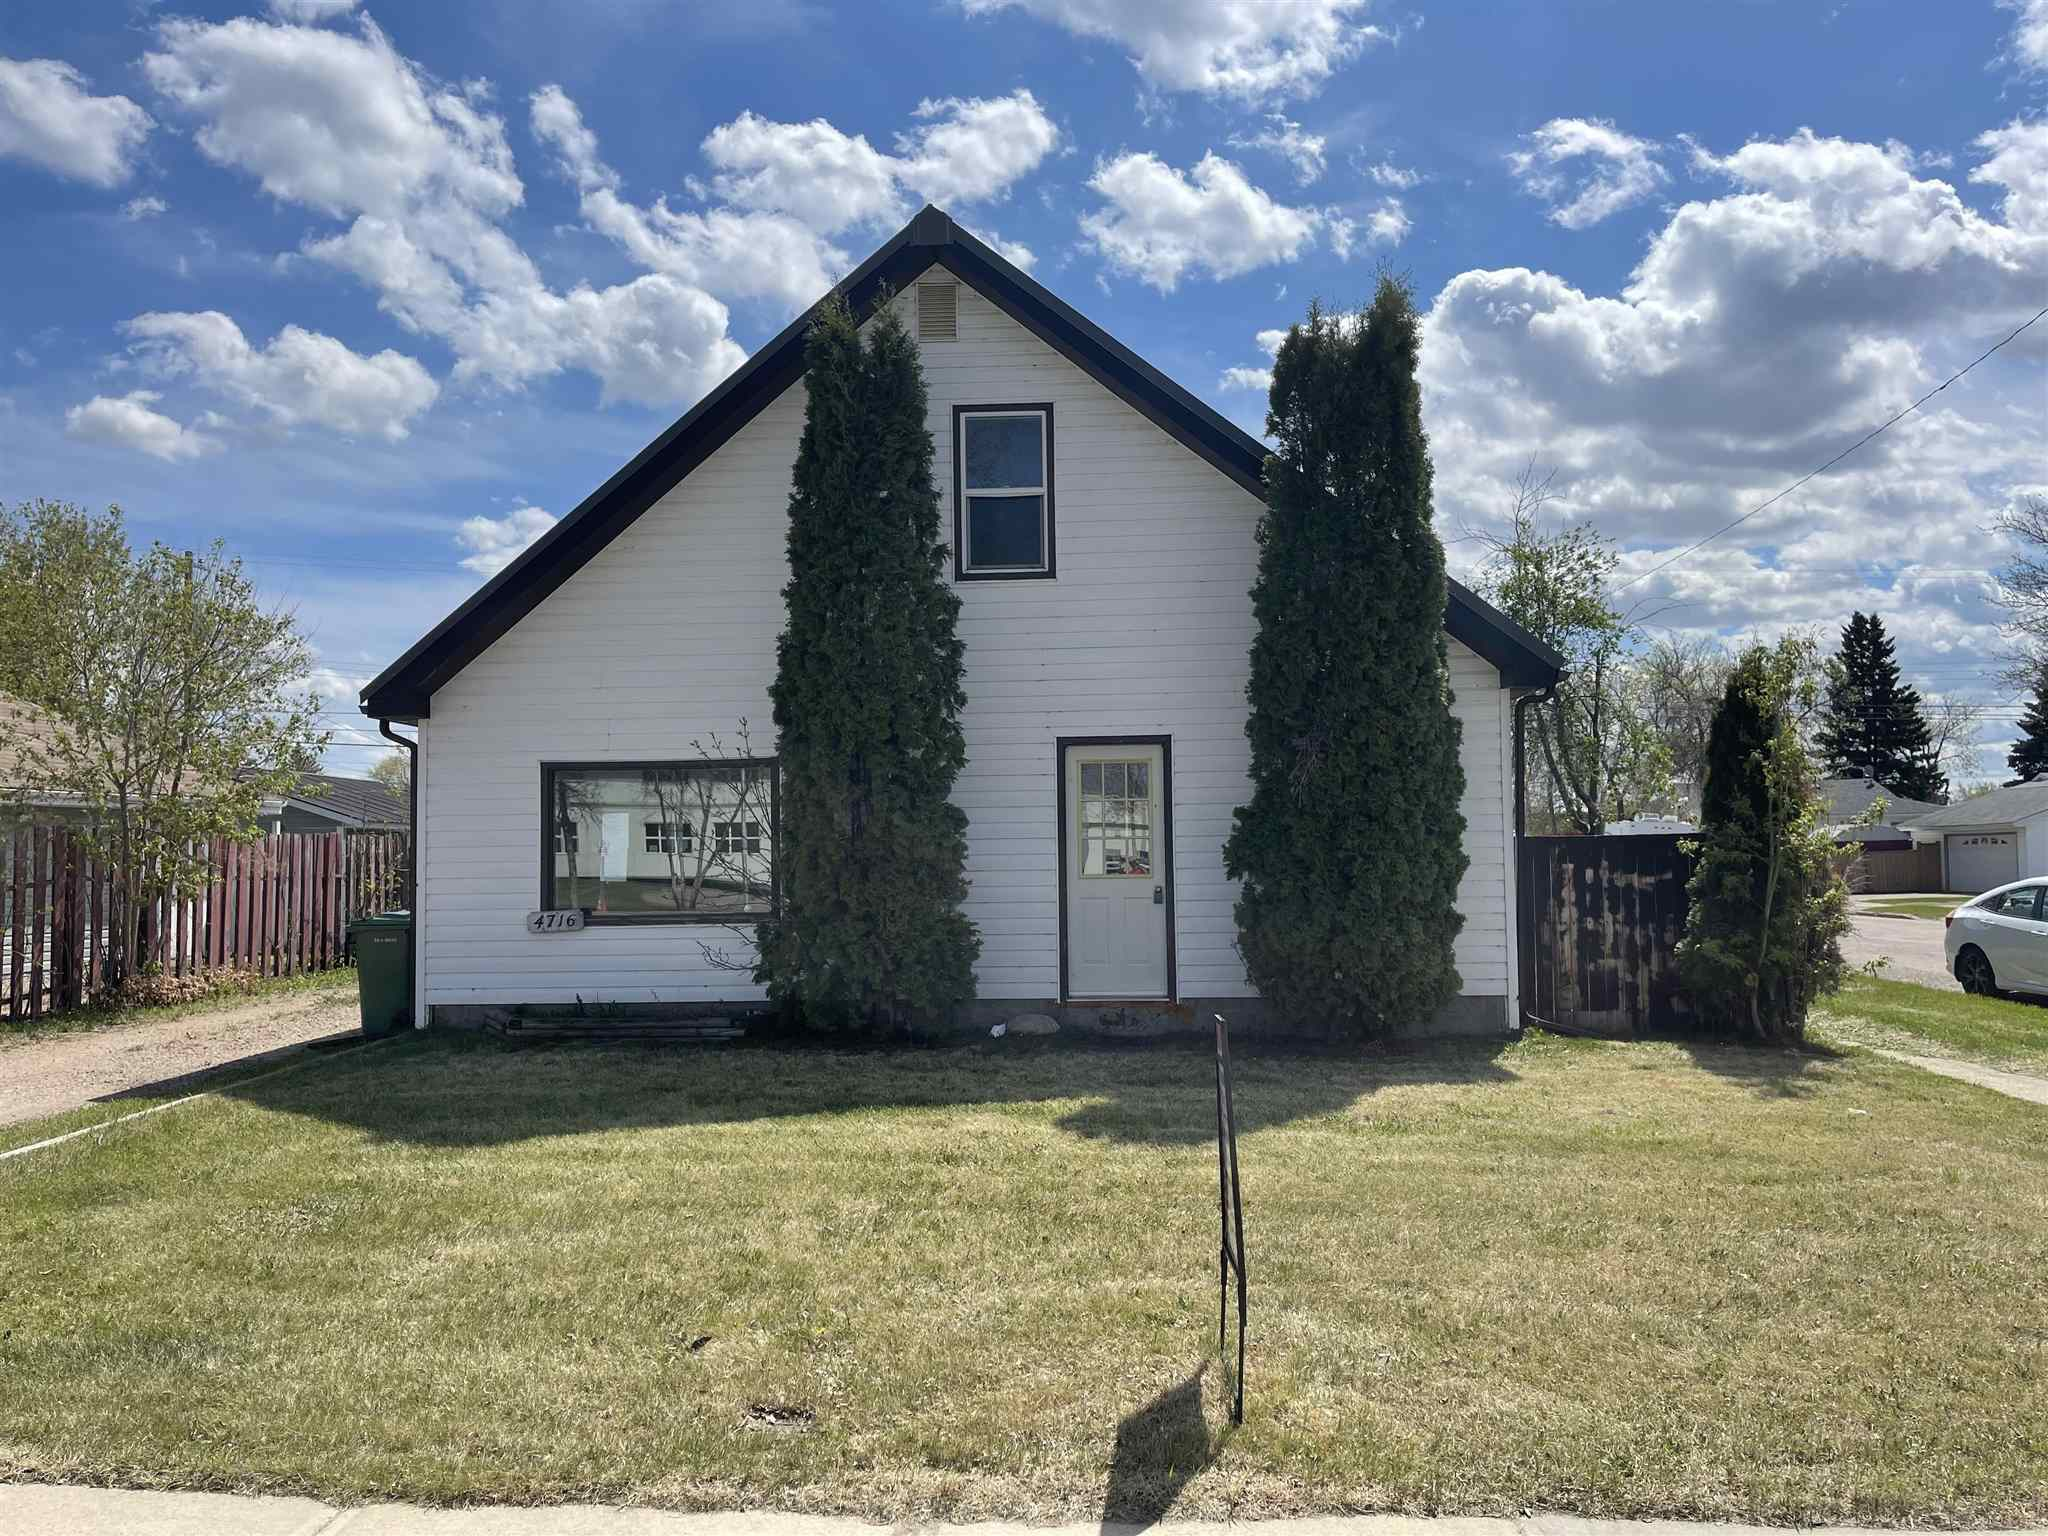 """This 1253 sq. ft 1 and a half storey is in a great location in relation to schools and main street. Most everything has been updated. Kitchen/Dining area is open and modern. Living area is roomy. Main floor has 1 bedroom,  a 4 pc. bathroom and the back entry has laundry and storage rooms for easy access. Upper level has 2nd and 3rd bedrooms. The yard is fenced and private. This home had a new high efficient furnace installed and a new metal roof. Property is sold """"As is"""" """"where Is""""."""